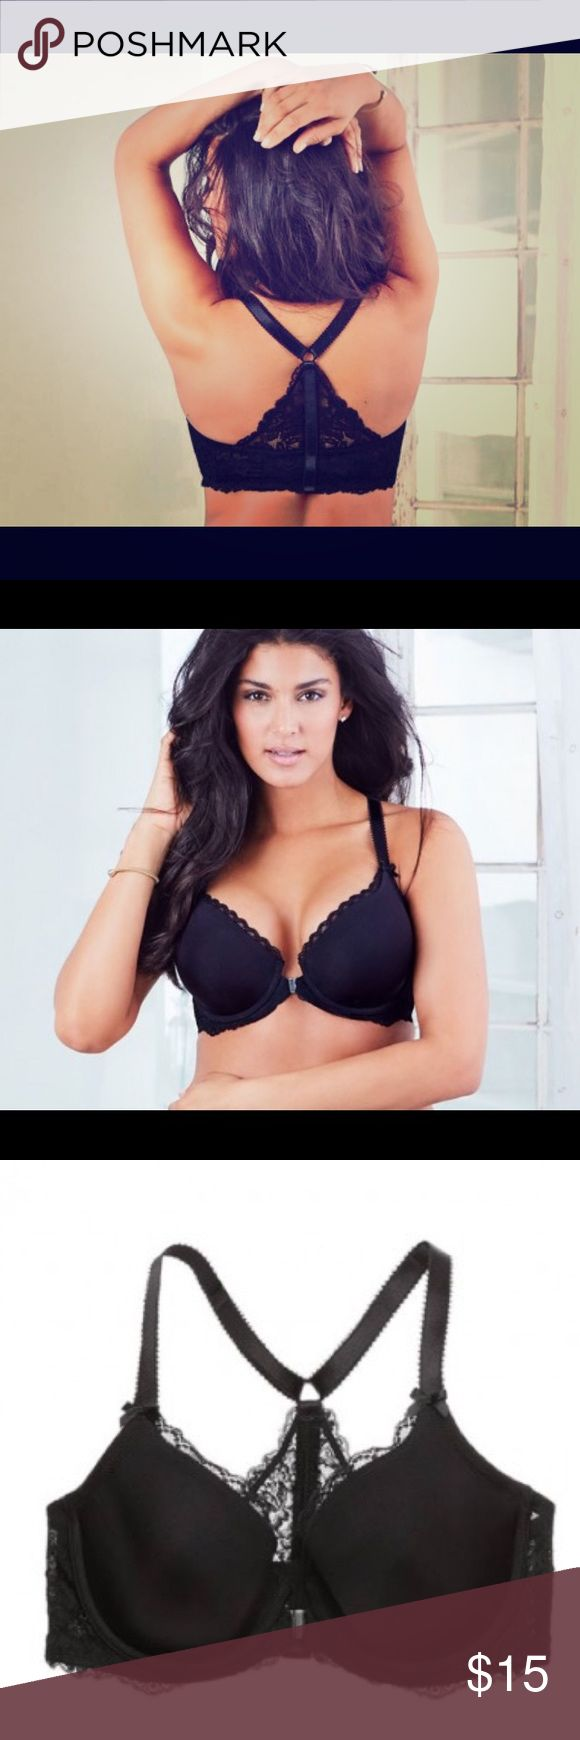 Black Racer Back Bra Beautiful black bra with a lacy racer back and a simple silver metal front clasp. Plus size lingerie this cute is hard to find. Never worn, I accidentally ordered the wrong size in a set and could not return it. Adore Me Intimates & Sleepwear Bras